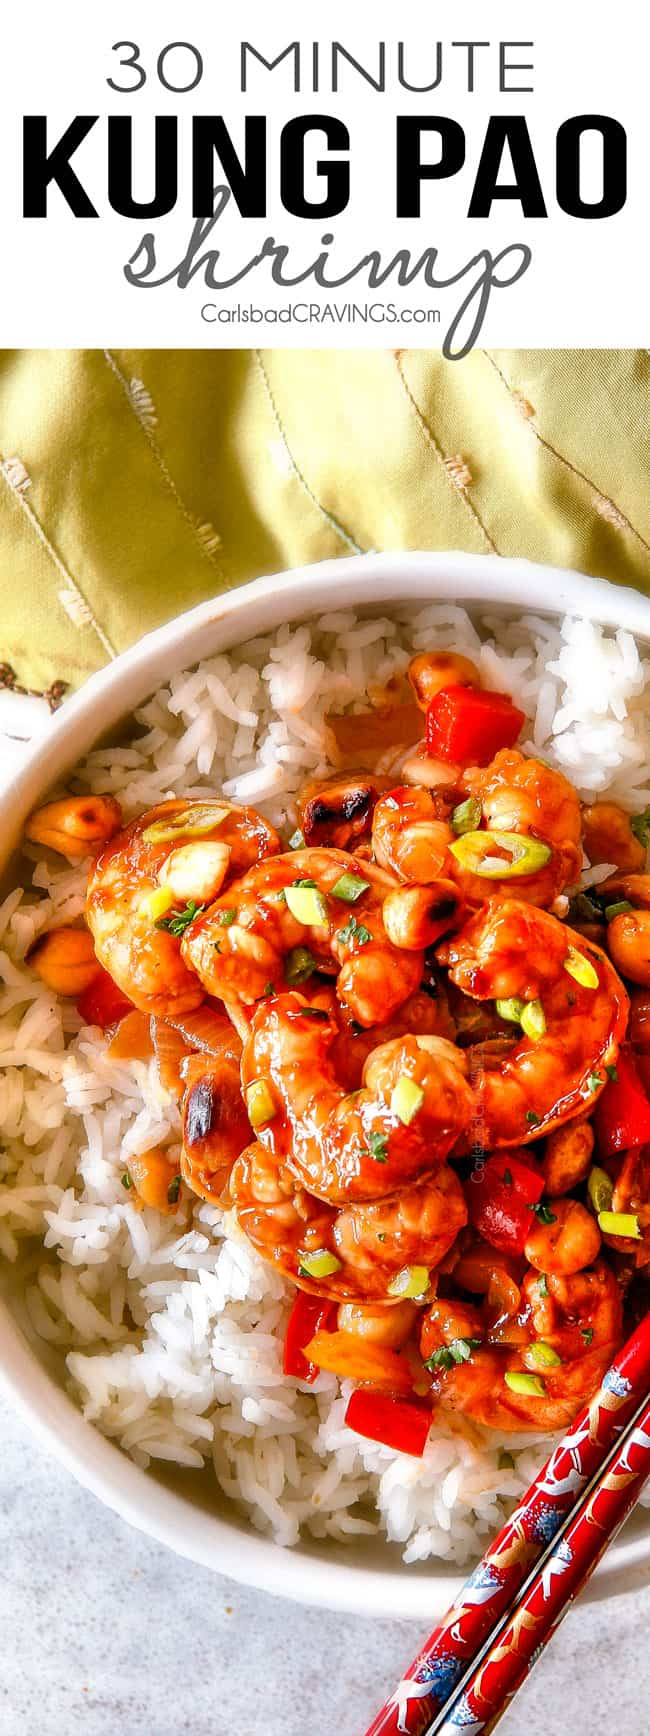 This easy, healthy, Kung Pao Shrimp tastes better than takeout and is on your table in less than 30 minutes! I was licking my plate of the savory spicy sauce!